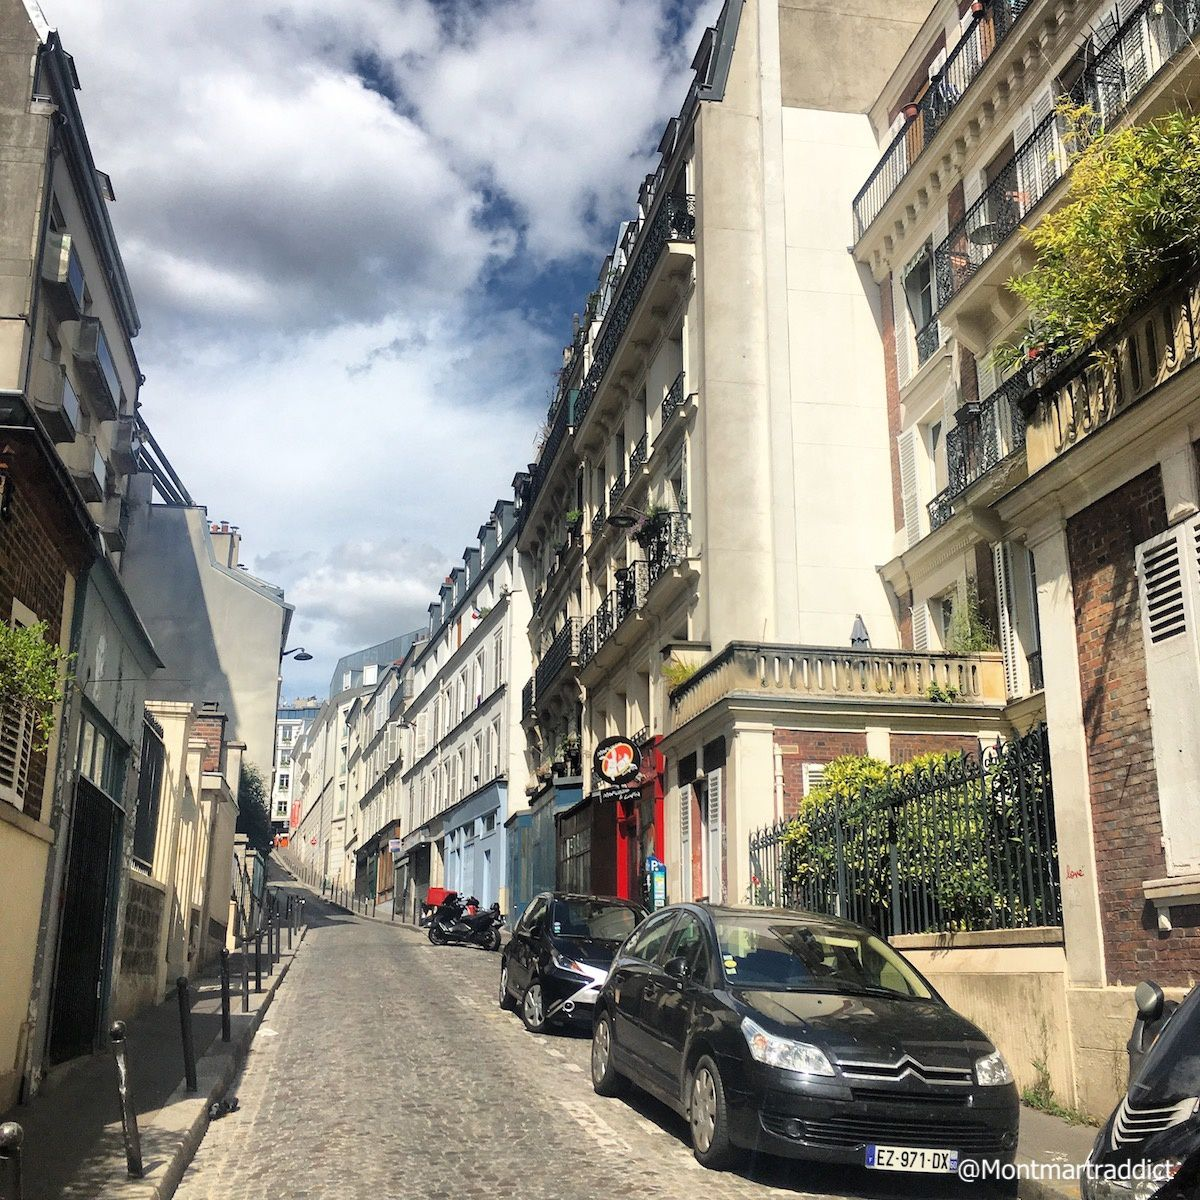 01. Back to Montmartre, 75018